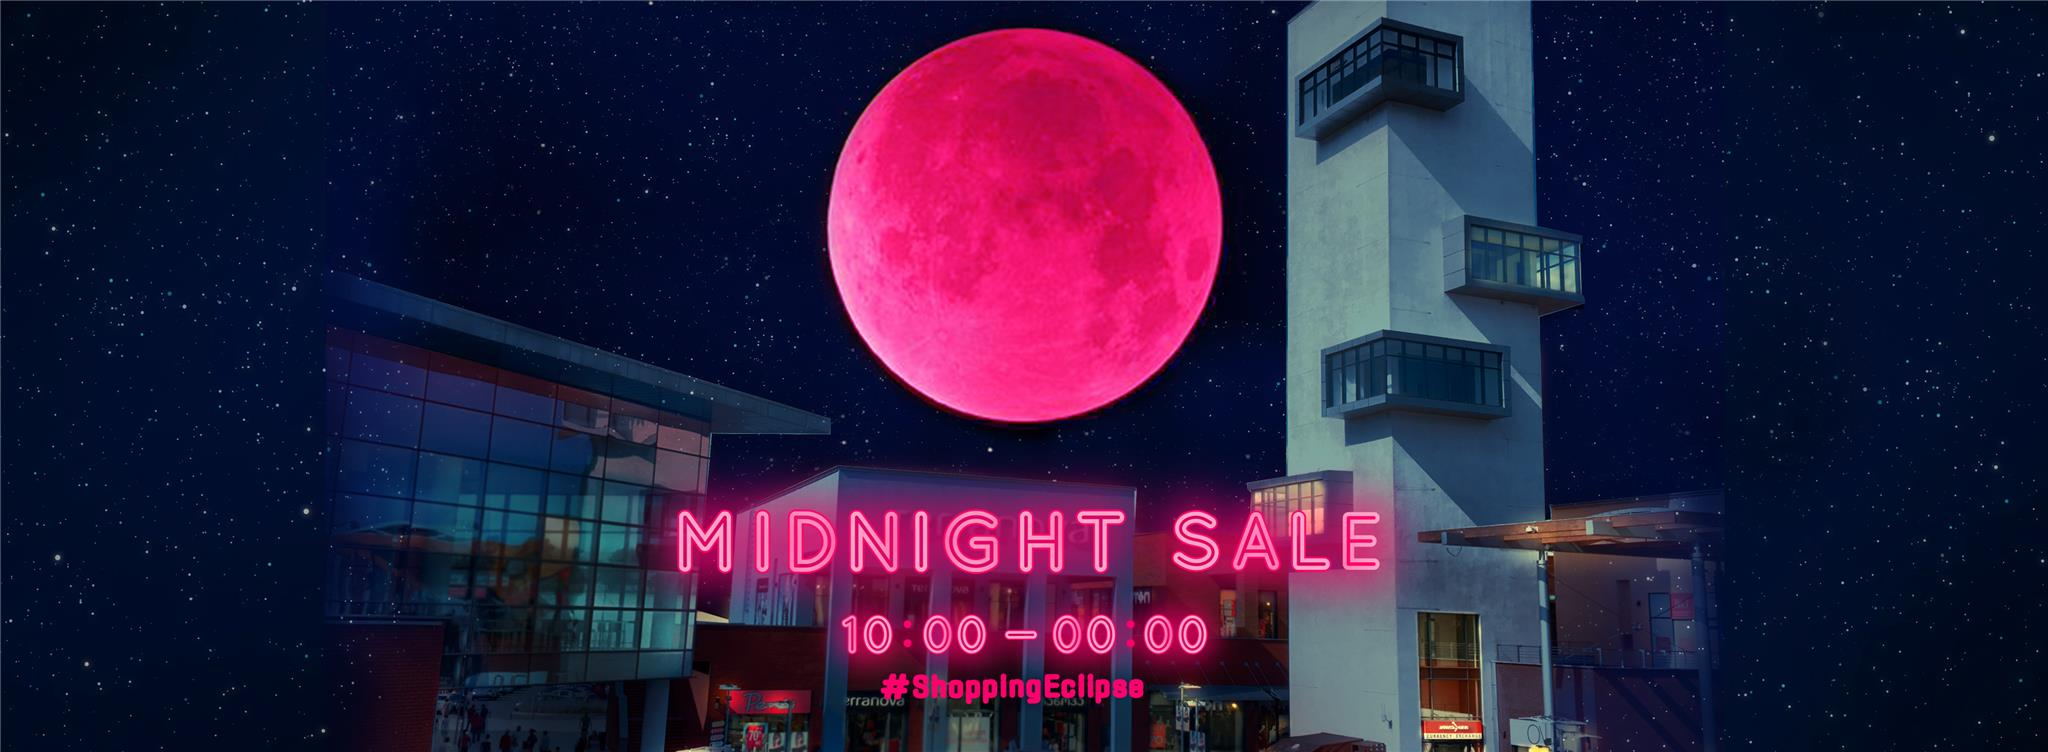 Midnight Sale & Shopping Eclipse at East Point photo